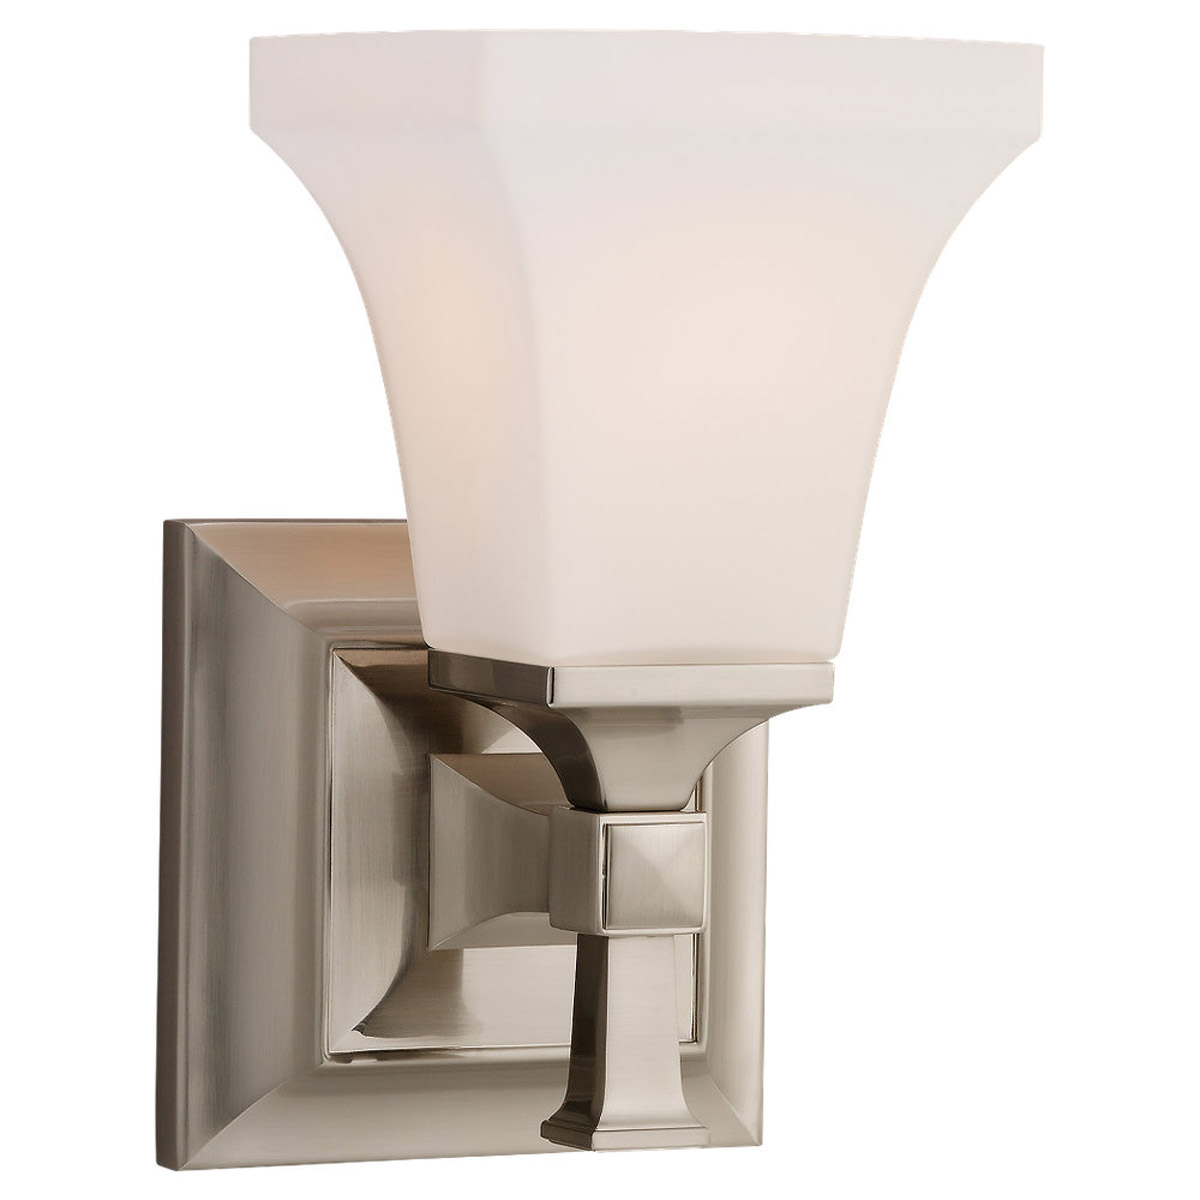 Sea Gull Lighting Melody 1 Light Bath Vanity in Brushed Nickel 44705-962